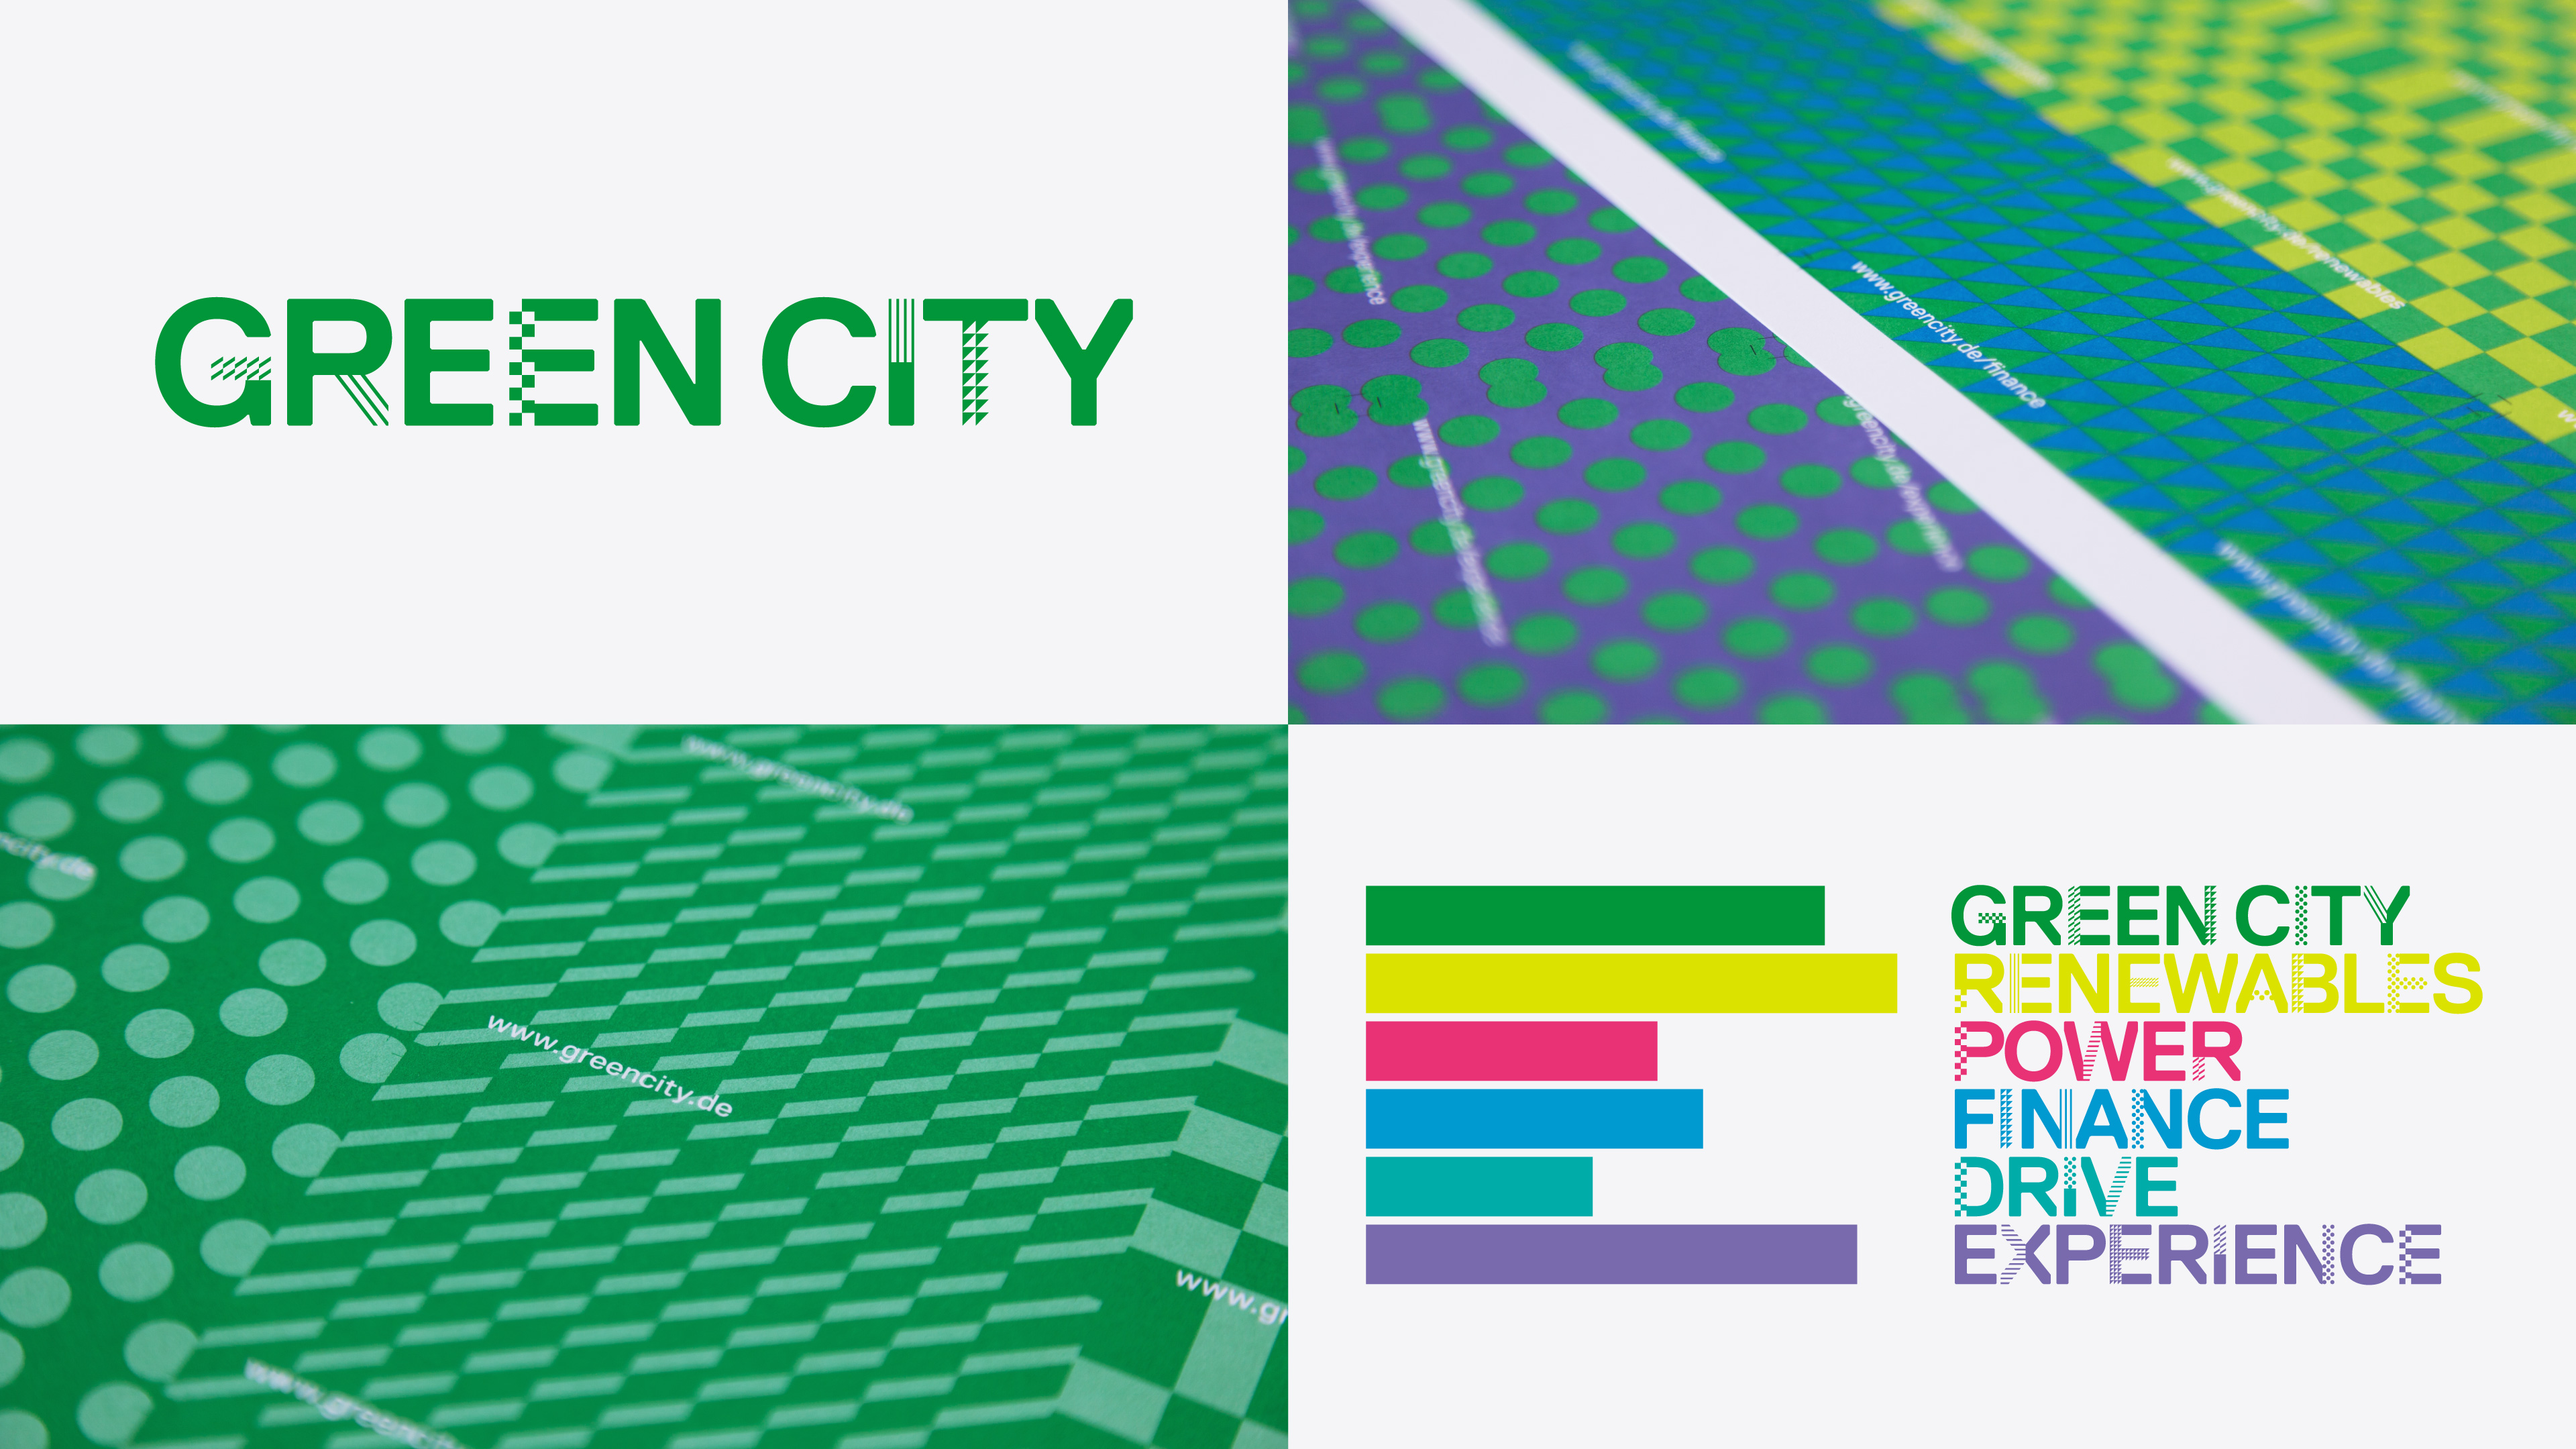 The picture shows the business sections of Green City.